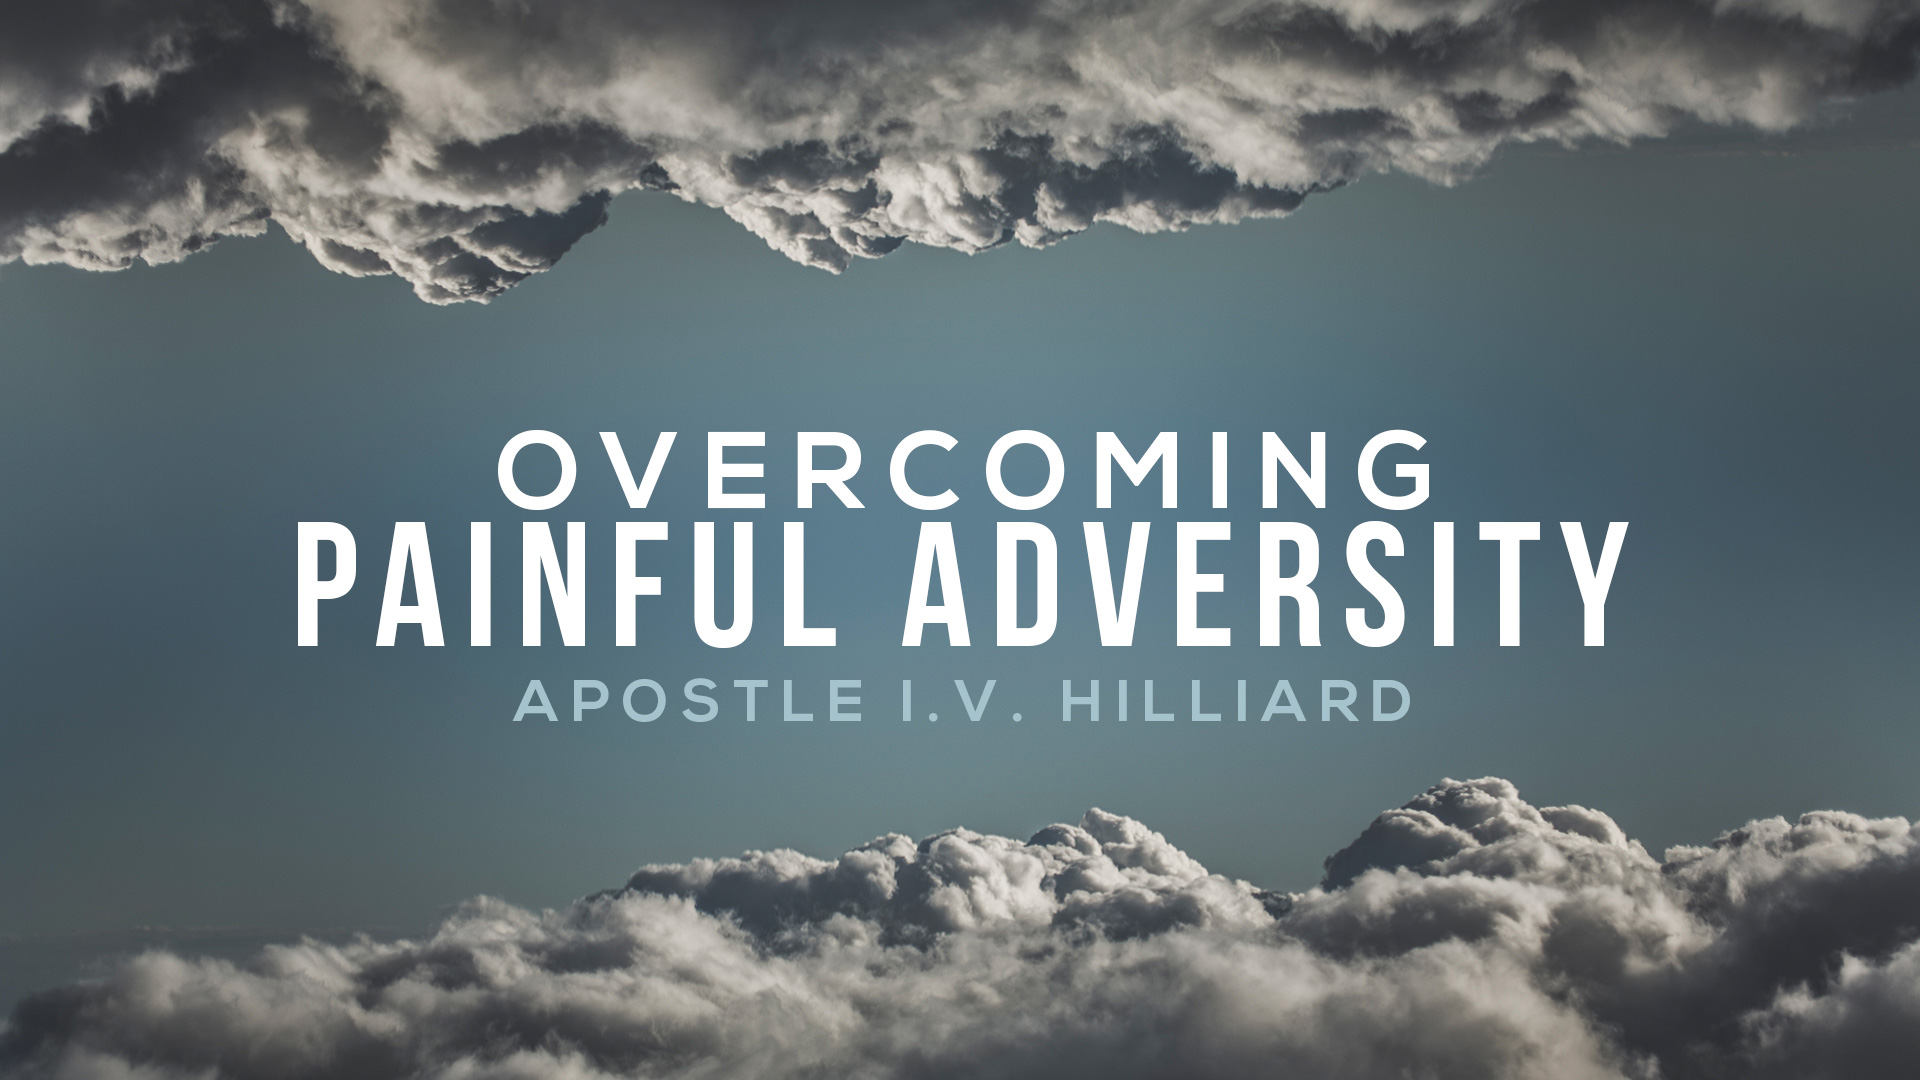 Overcoming Painful Adversity part 1